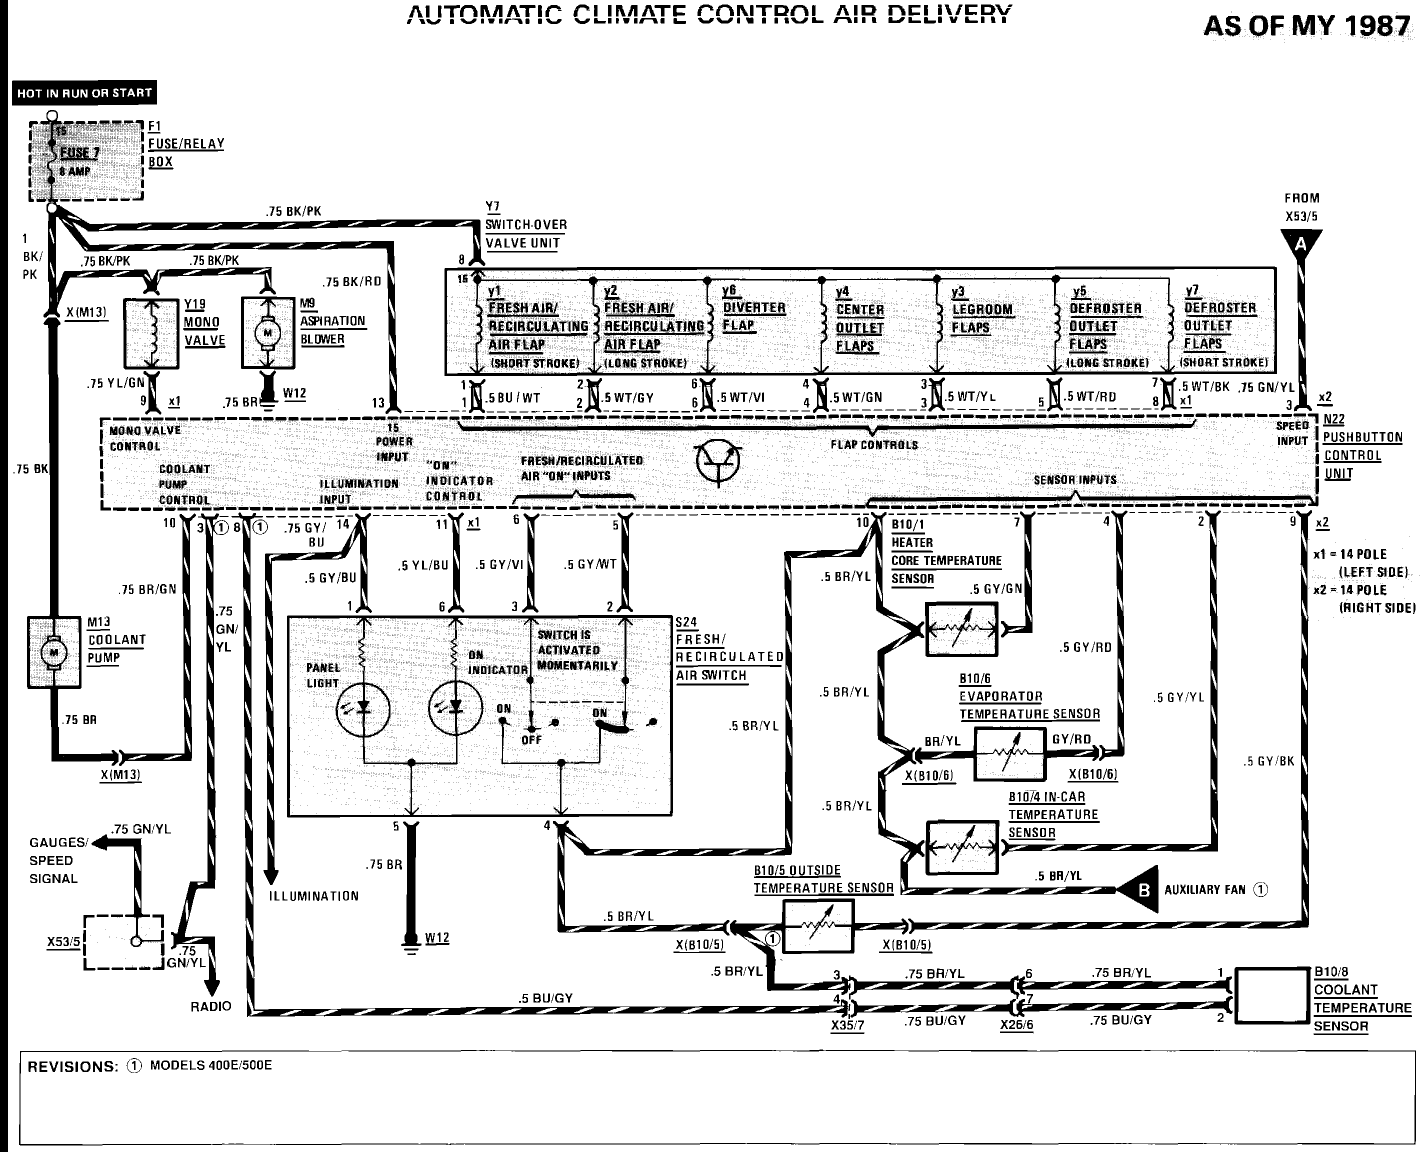 I Need The Schematics Of The Wiring Harness For The Power Antenna And The Air Conditioner